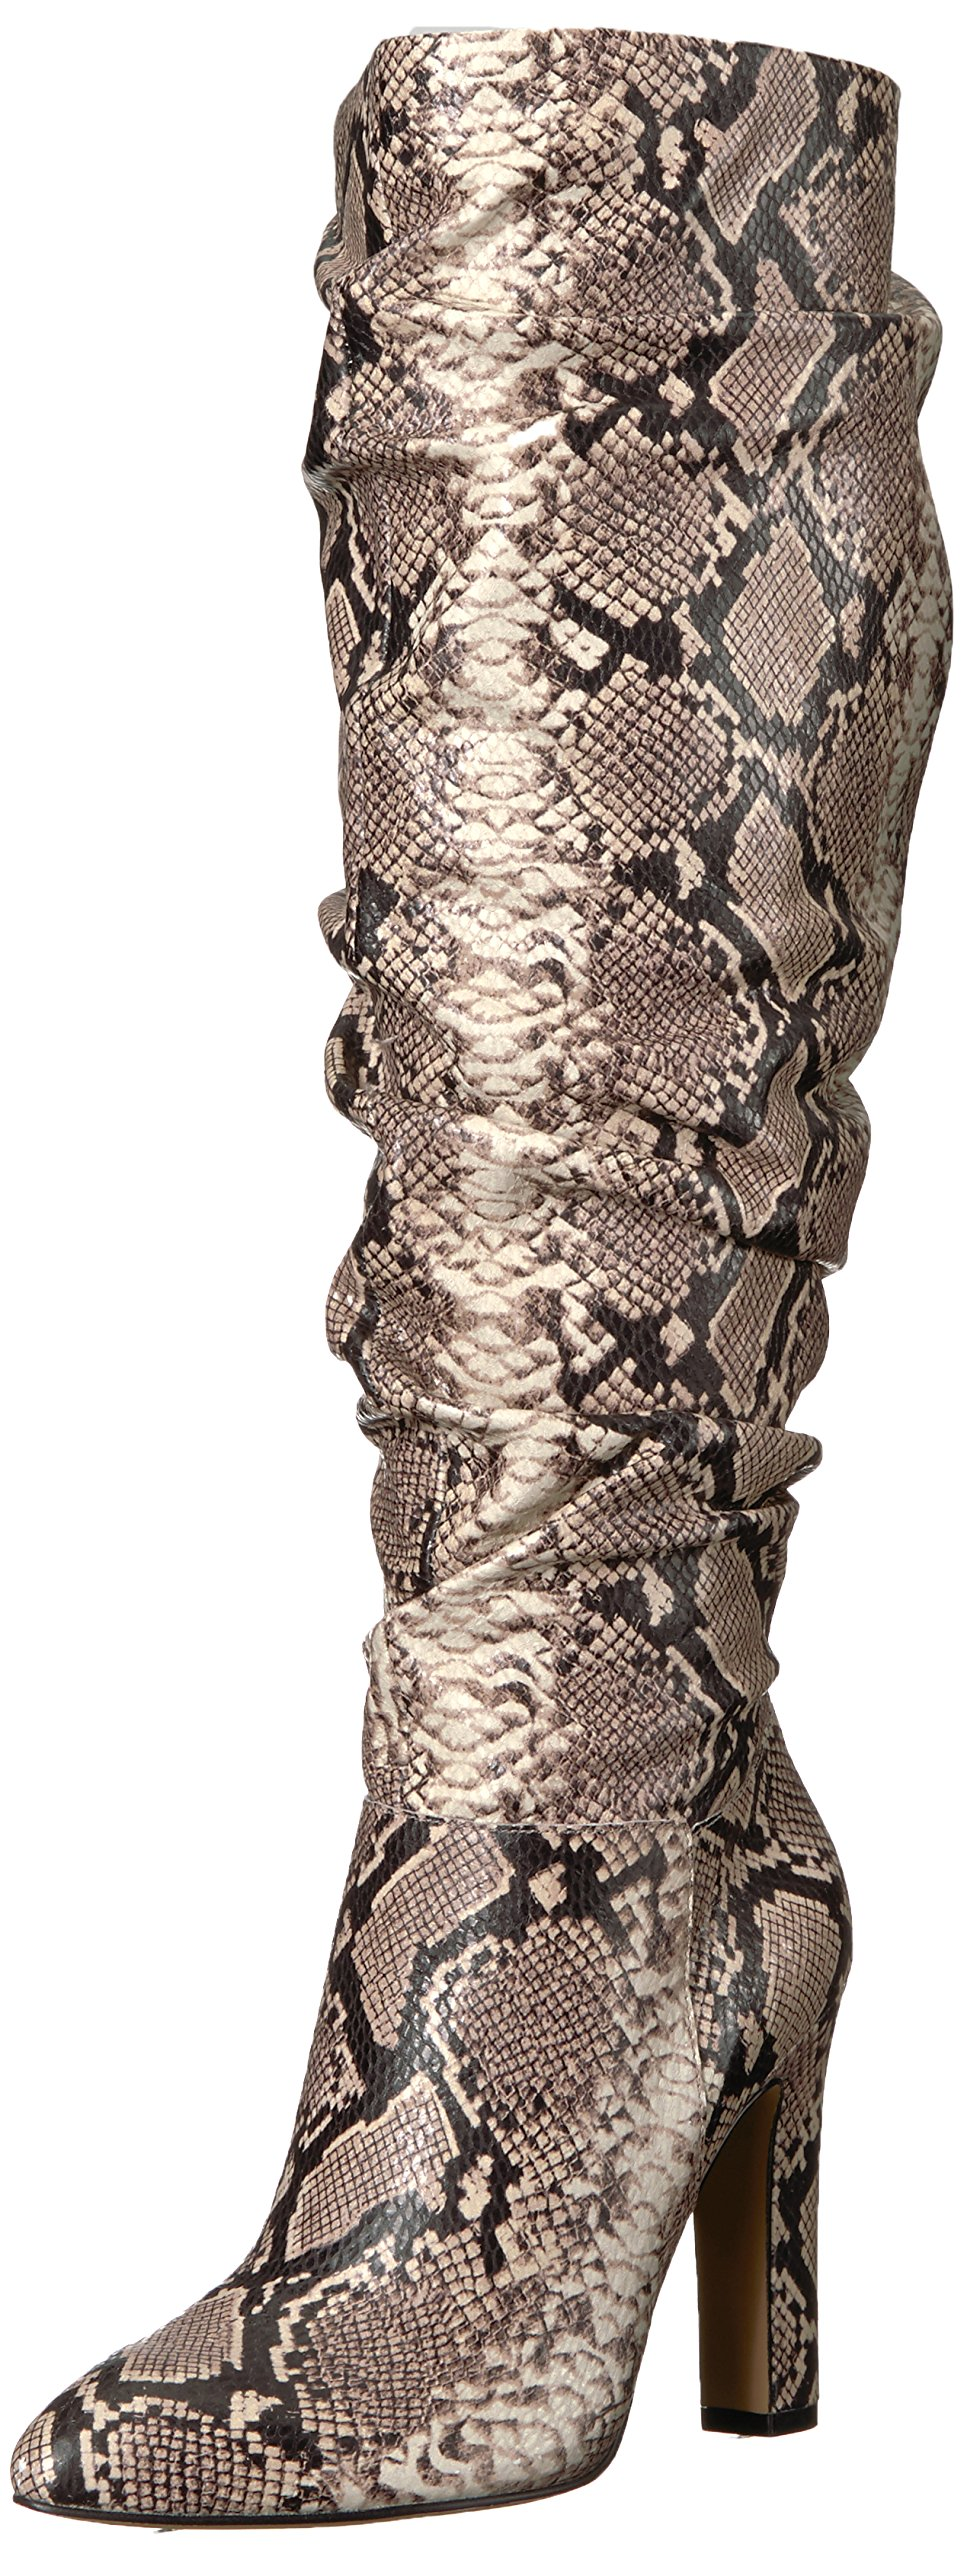 The Fix Women's Kennedi Pointed-Toe To-The-Knee Slouch Boot, Mushroom Python Print, 8.5 B US